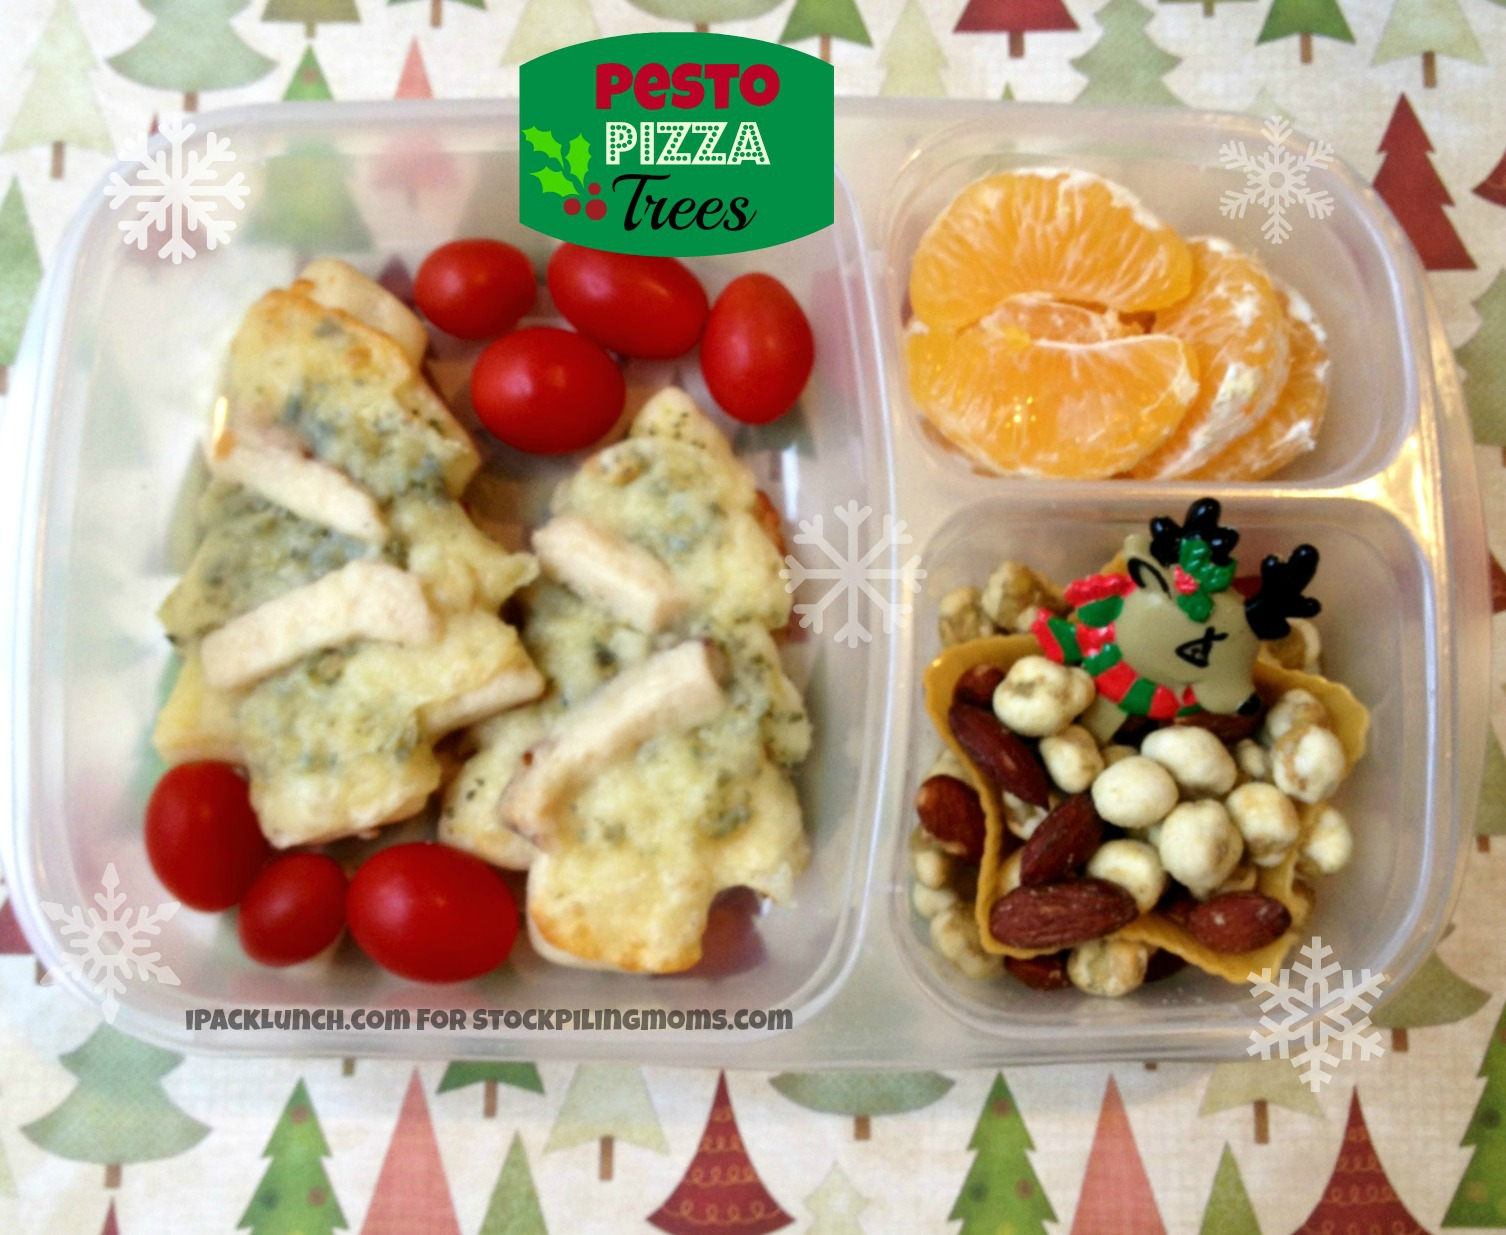 3 for 3 Lunchbox Challenge featuring Chicken shortcuts, grape tomatoes and oranges - perfect for the Holidays